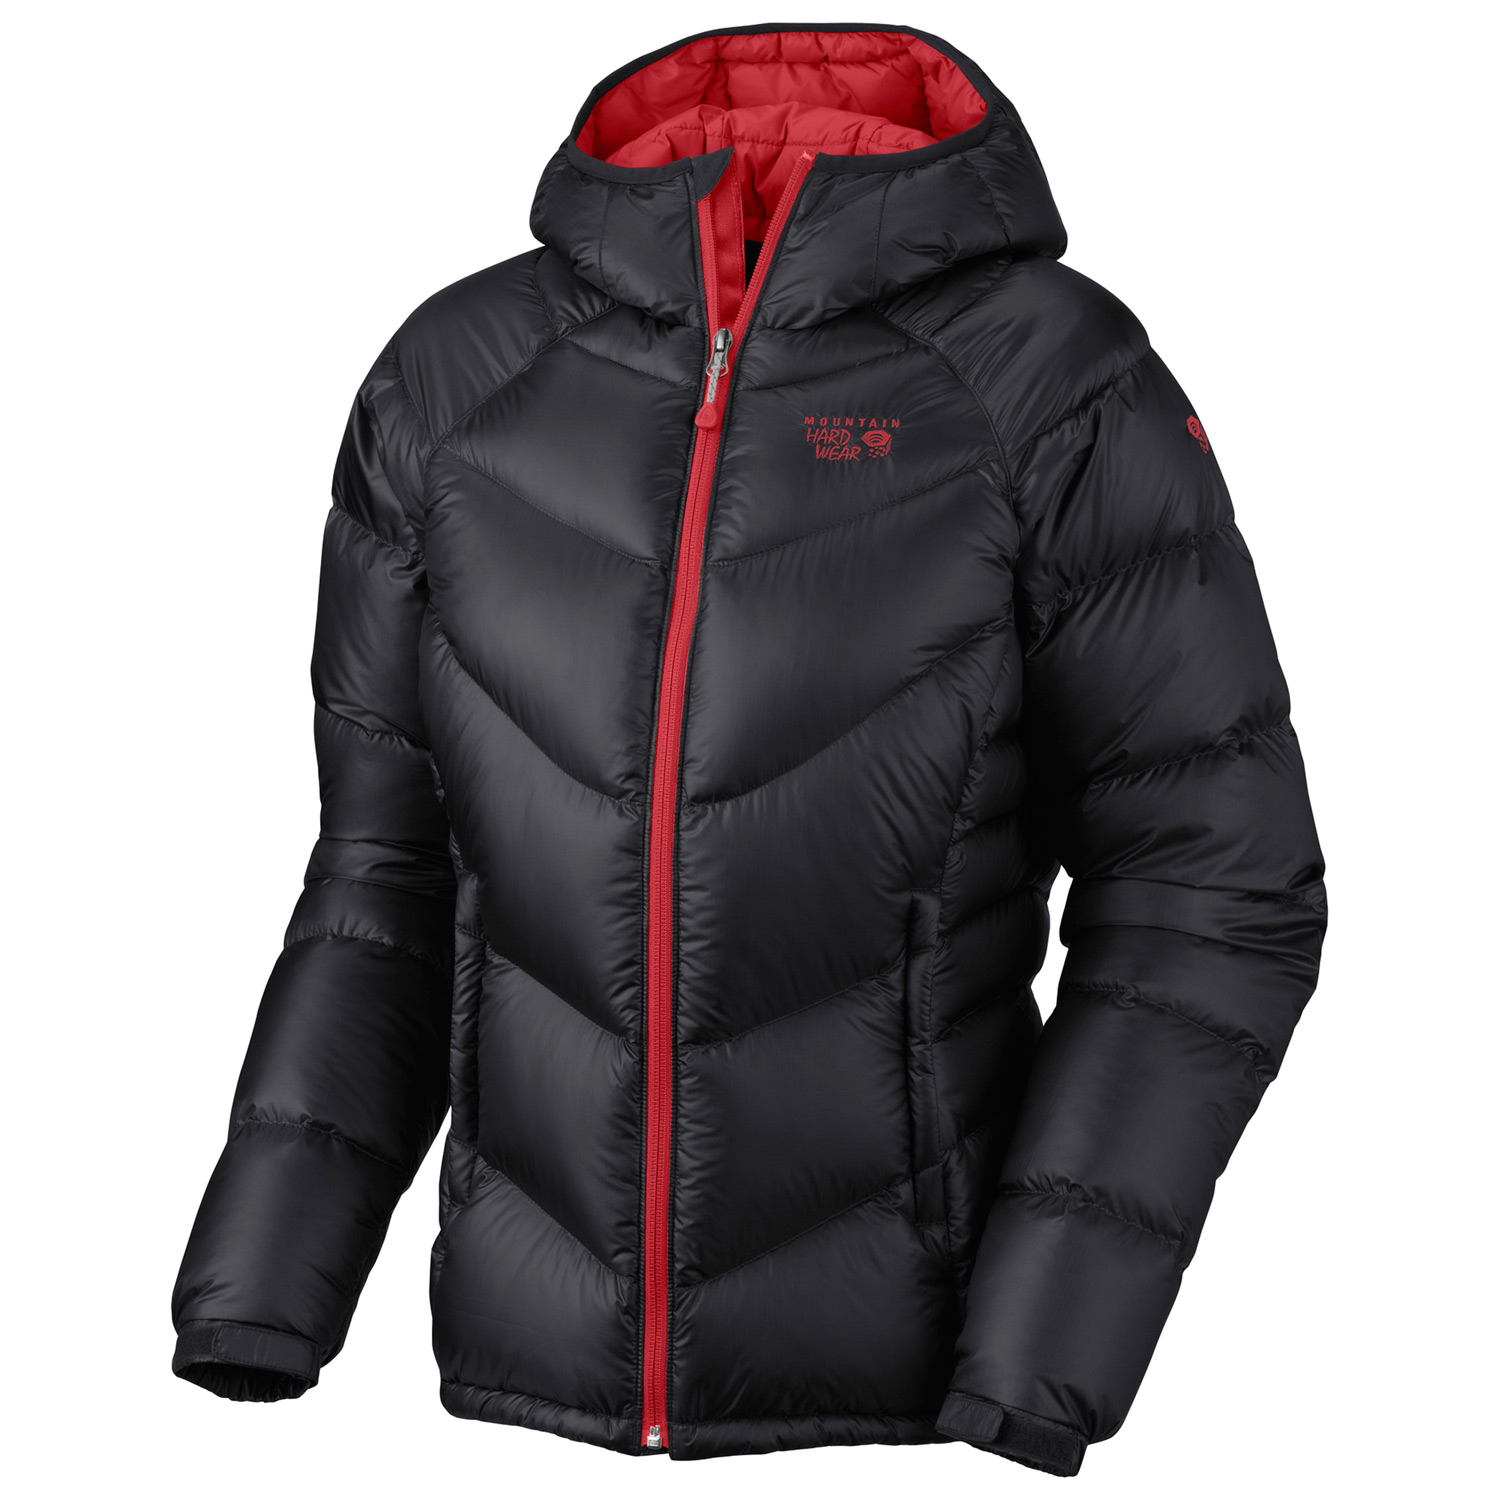 Looking for the right winter route? You'll want to make sure you're in the right jacket first. This lofty 650-fill goose down jacket has incredible ripstop nylon and DWR for abrasion and water resistance on even the toughest winter lines. Lightweight fabric and plenty of lofty 650-fill down. This jacket will keep you warm and moving quickly up the mountain.Key Features of the Mountain Hardwear Kelvinator Jacket: 20D Nylon Rip (100% nylon) 650-Fill Goose DownTwo front handwarmer pockets Dual hem drawcords seal in warmth Full elastic cuffs slide easily over layers to seal in warmth Low profile, insulated hood Micro-Chamois-lined chin guard prevents zipper chafe - $171.95